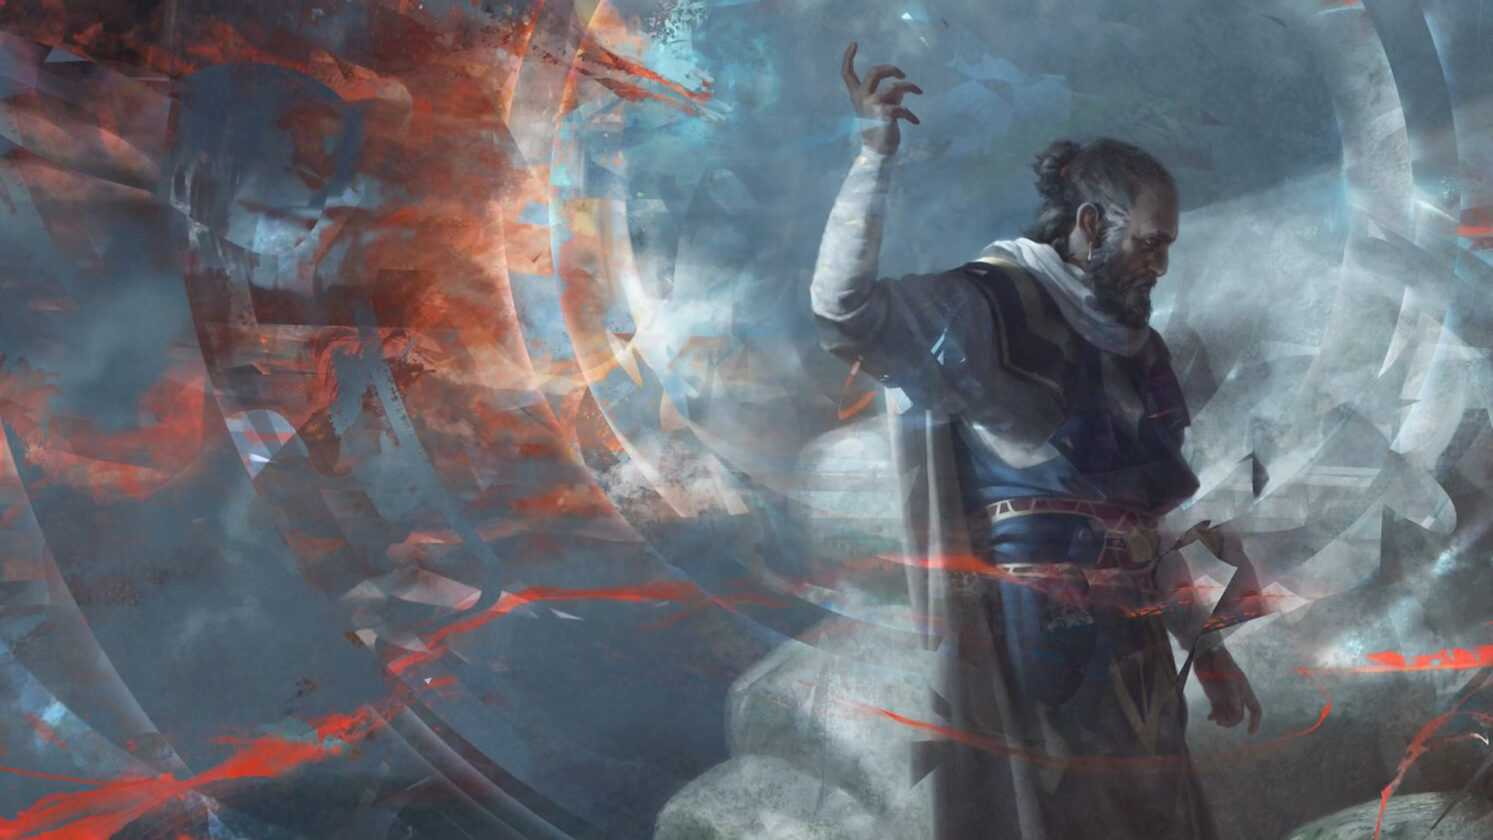 Tasha's Cauldron Of Everything: D&D's Newest Expansion Adds A Tome Full Of Spells (Pt. 2)